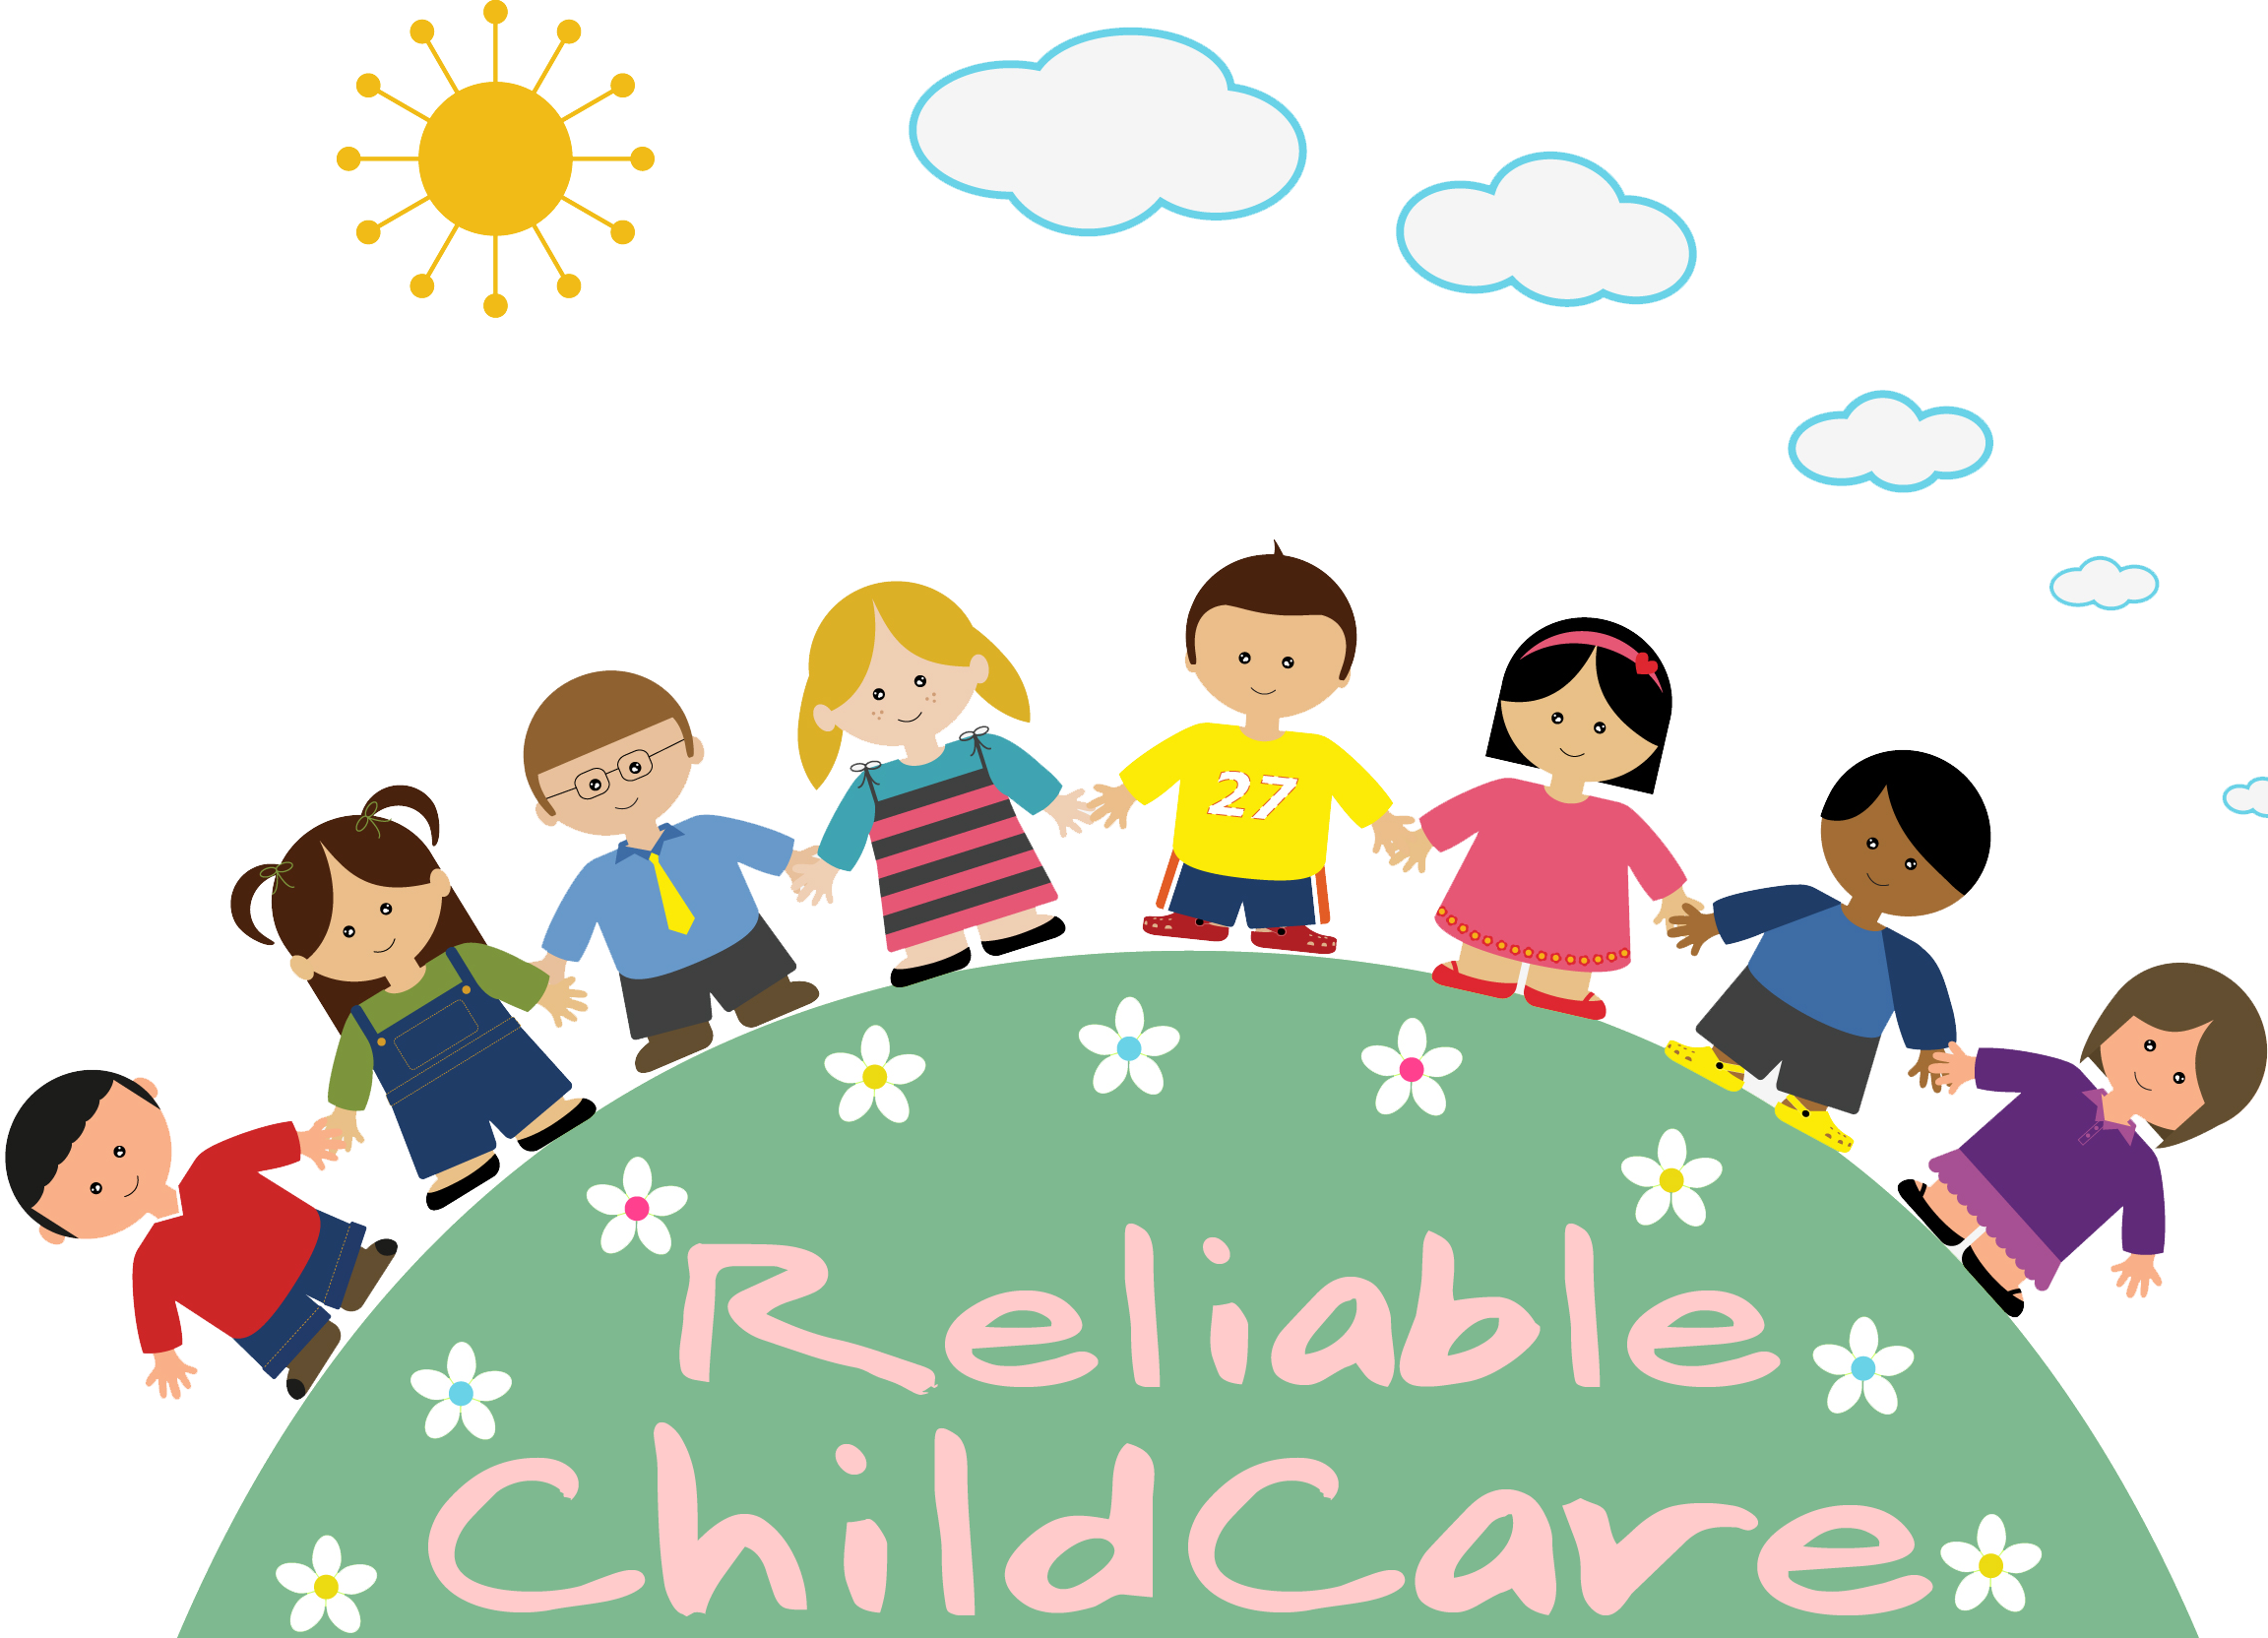 Babysitting clipart child development. Care transparent png pictures